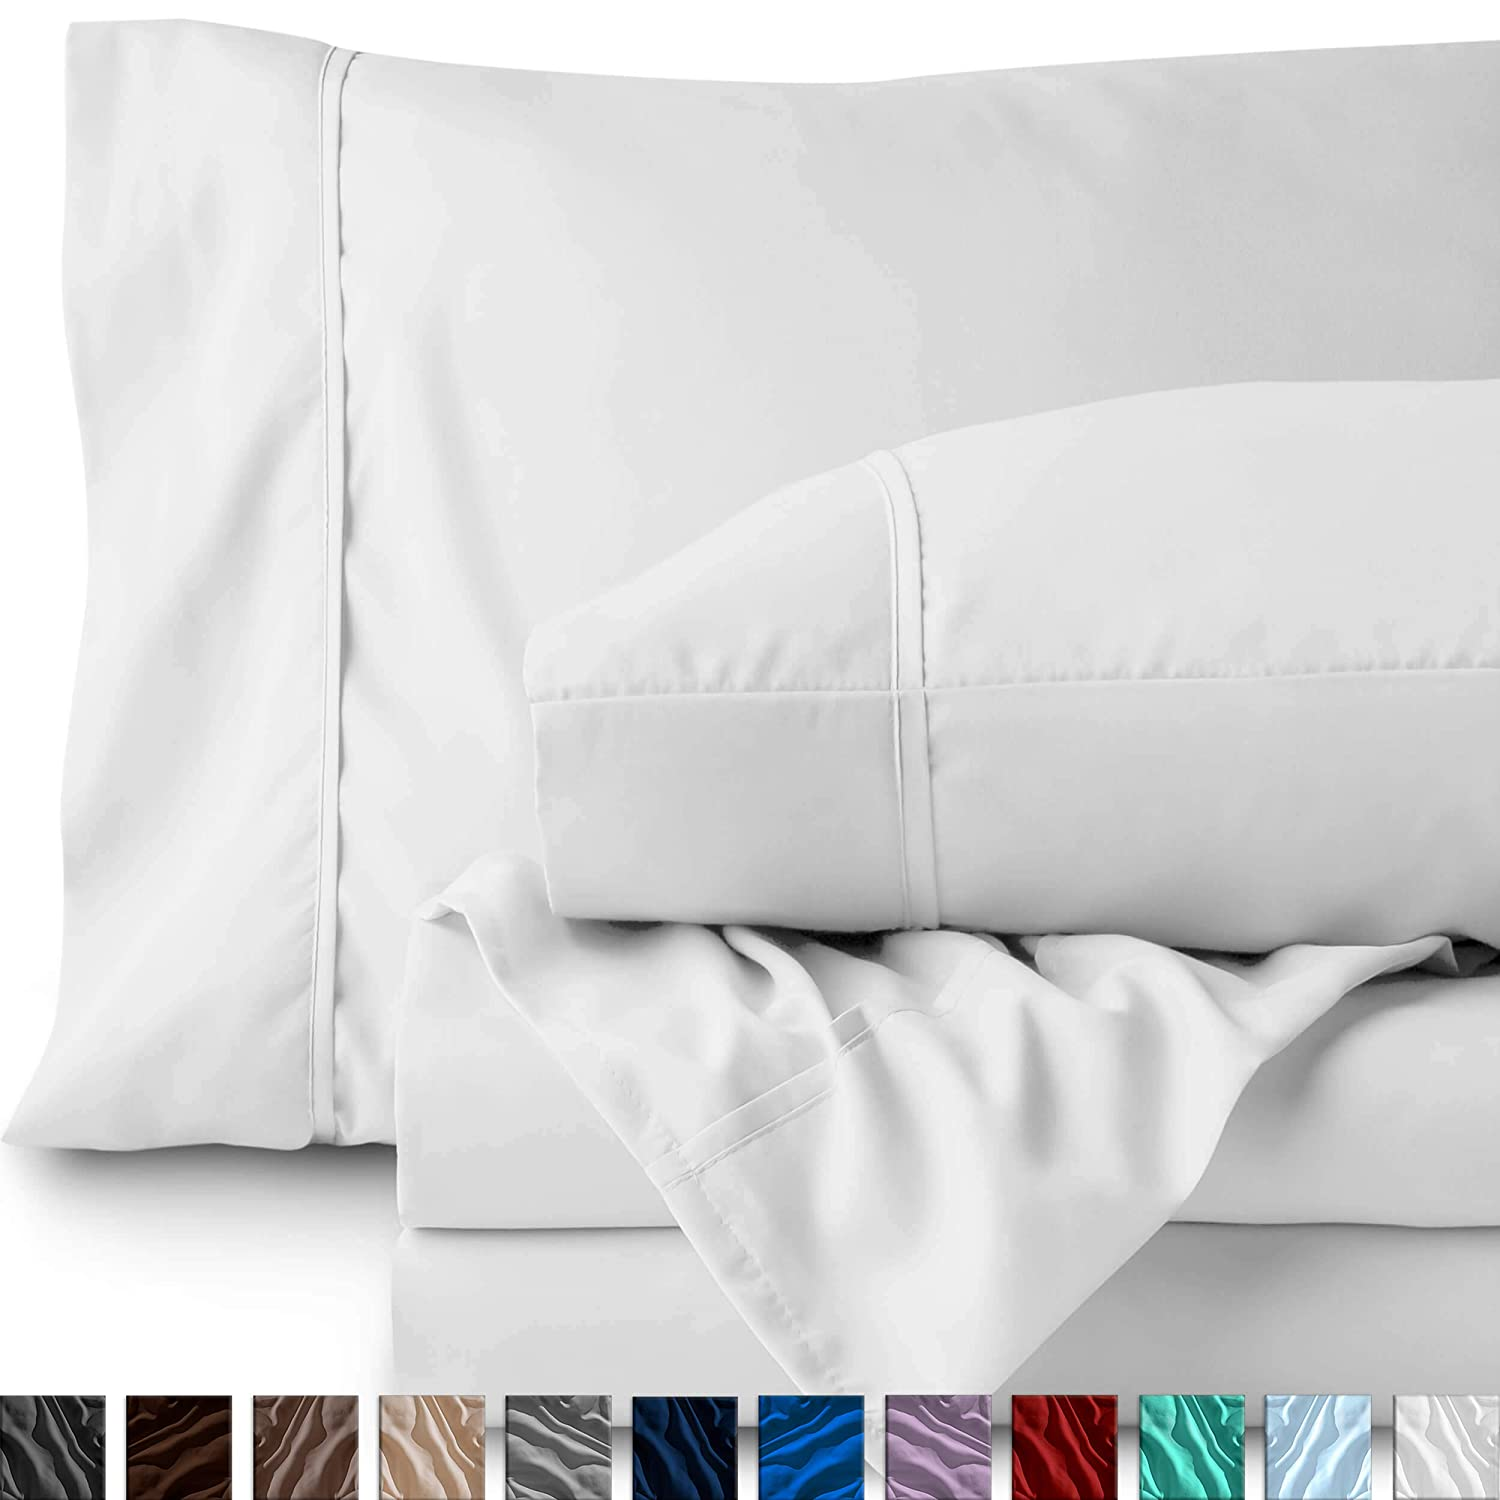 Bare Home Twin XL Sheet Set - College Dorm Size - Premium 1800 Ultra-Soft Microfiber Sheets Twin Extra Long - Double Brushed - Hypoallergenic - Wrinkle Resistant (Twin XL, White)